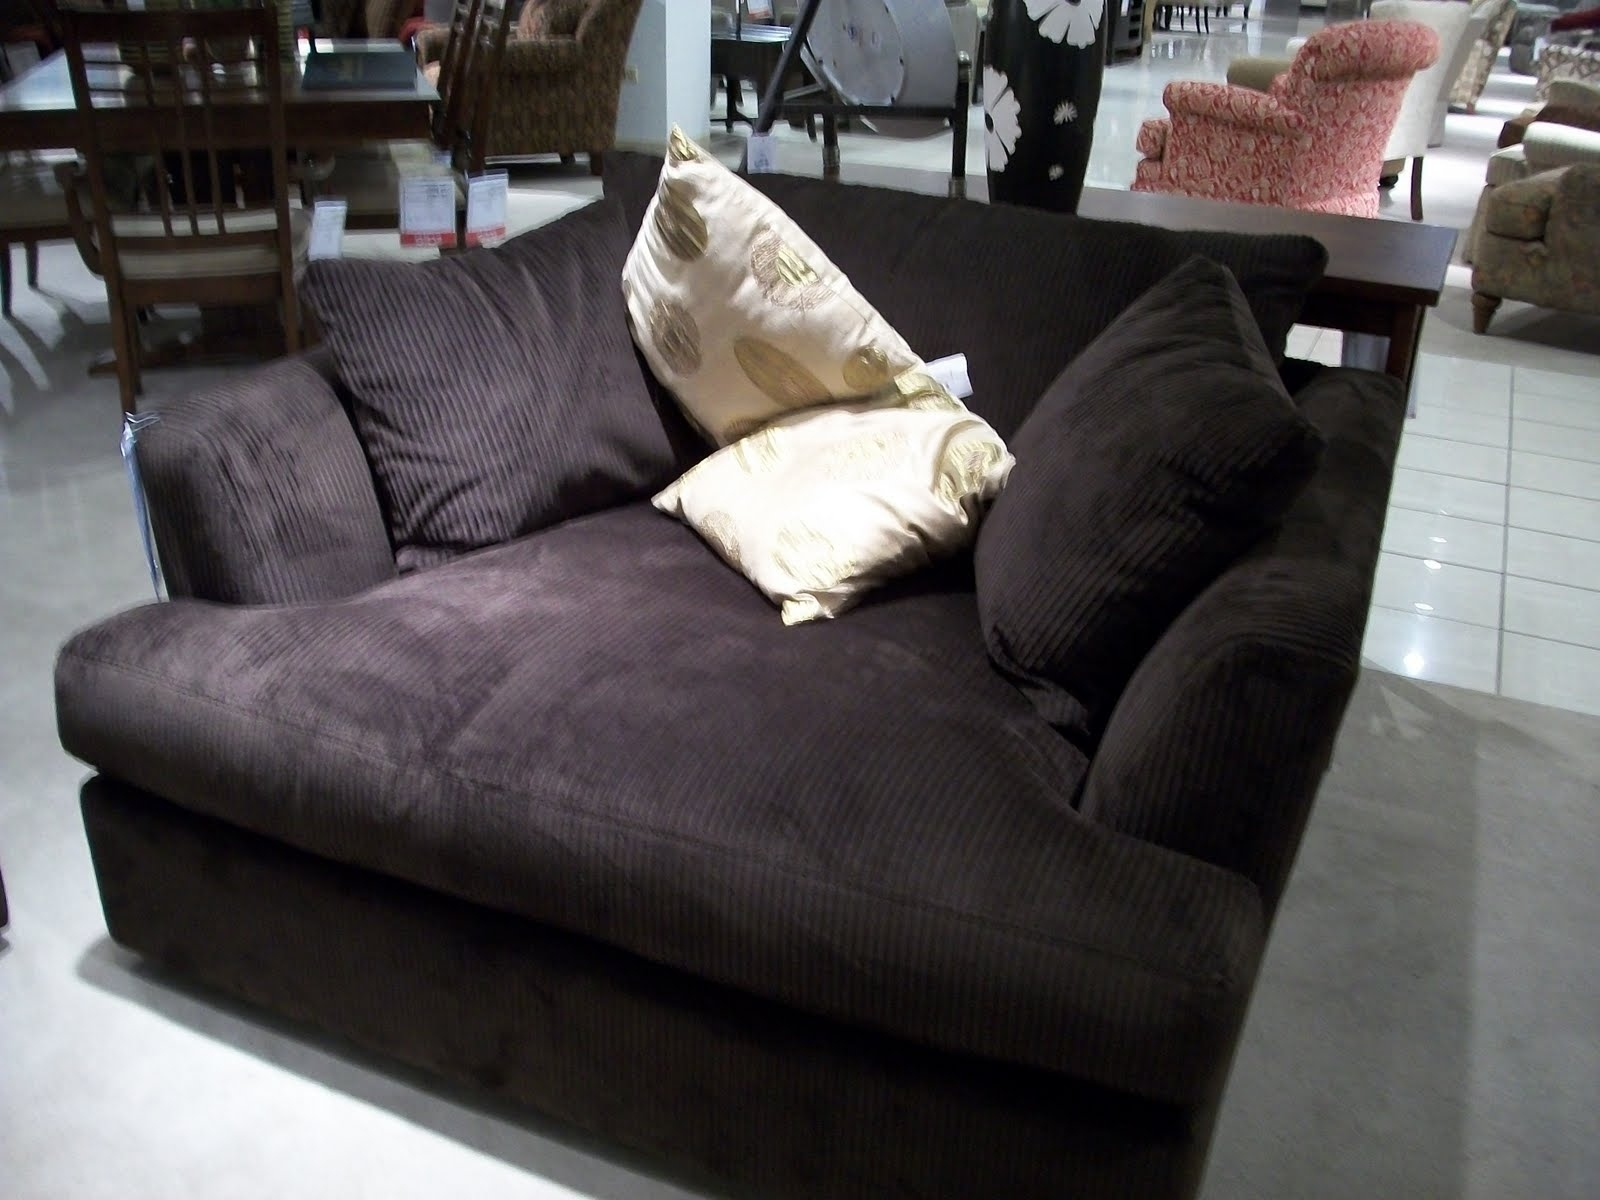 2018 Loveseat Chaise Lounges Within Charcoal Velvet Wide Chaise Chair With Modern Armrest Of (View 15 of 15)